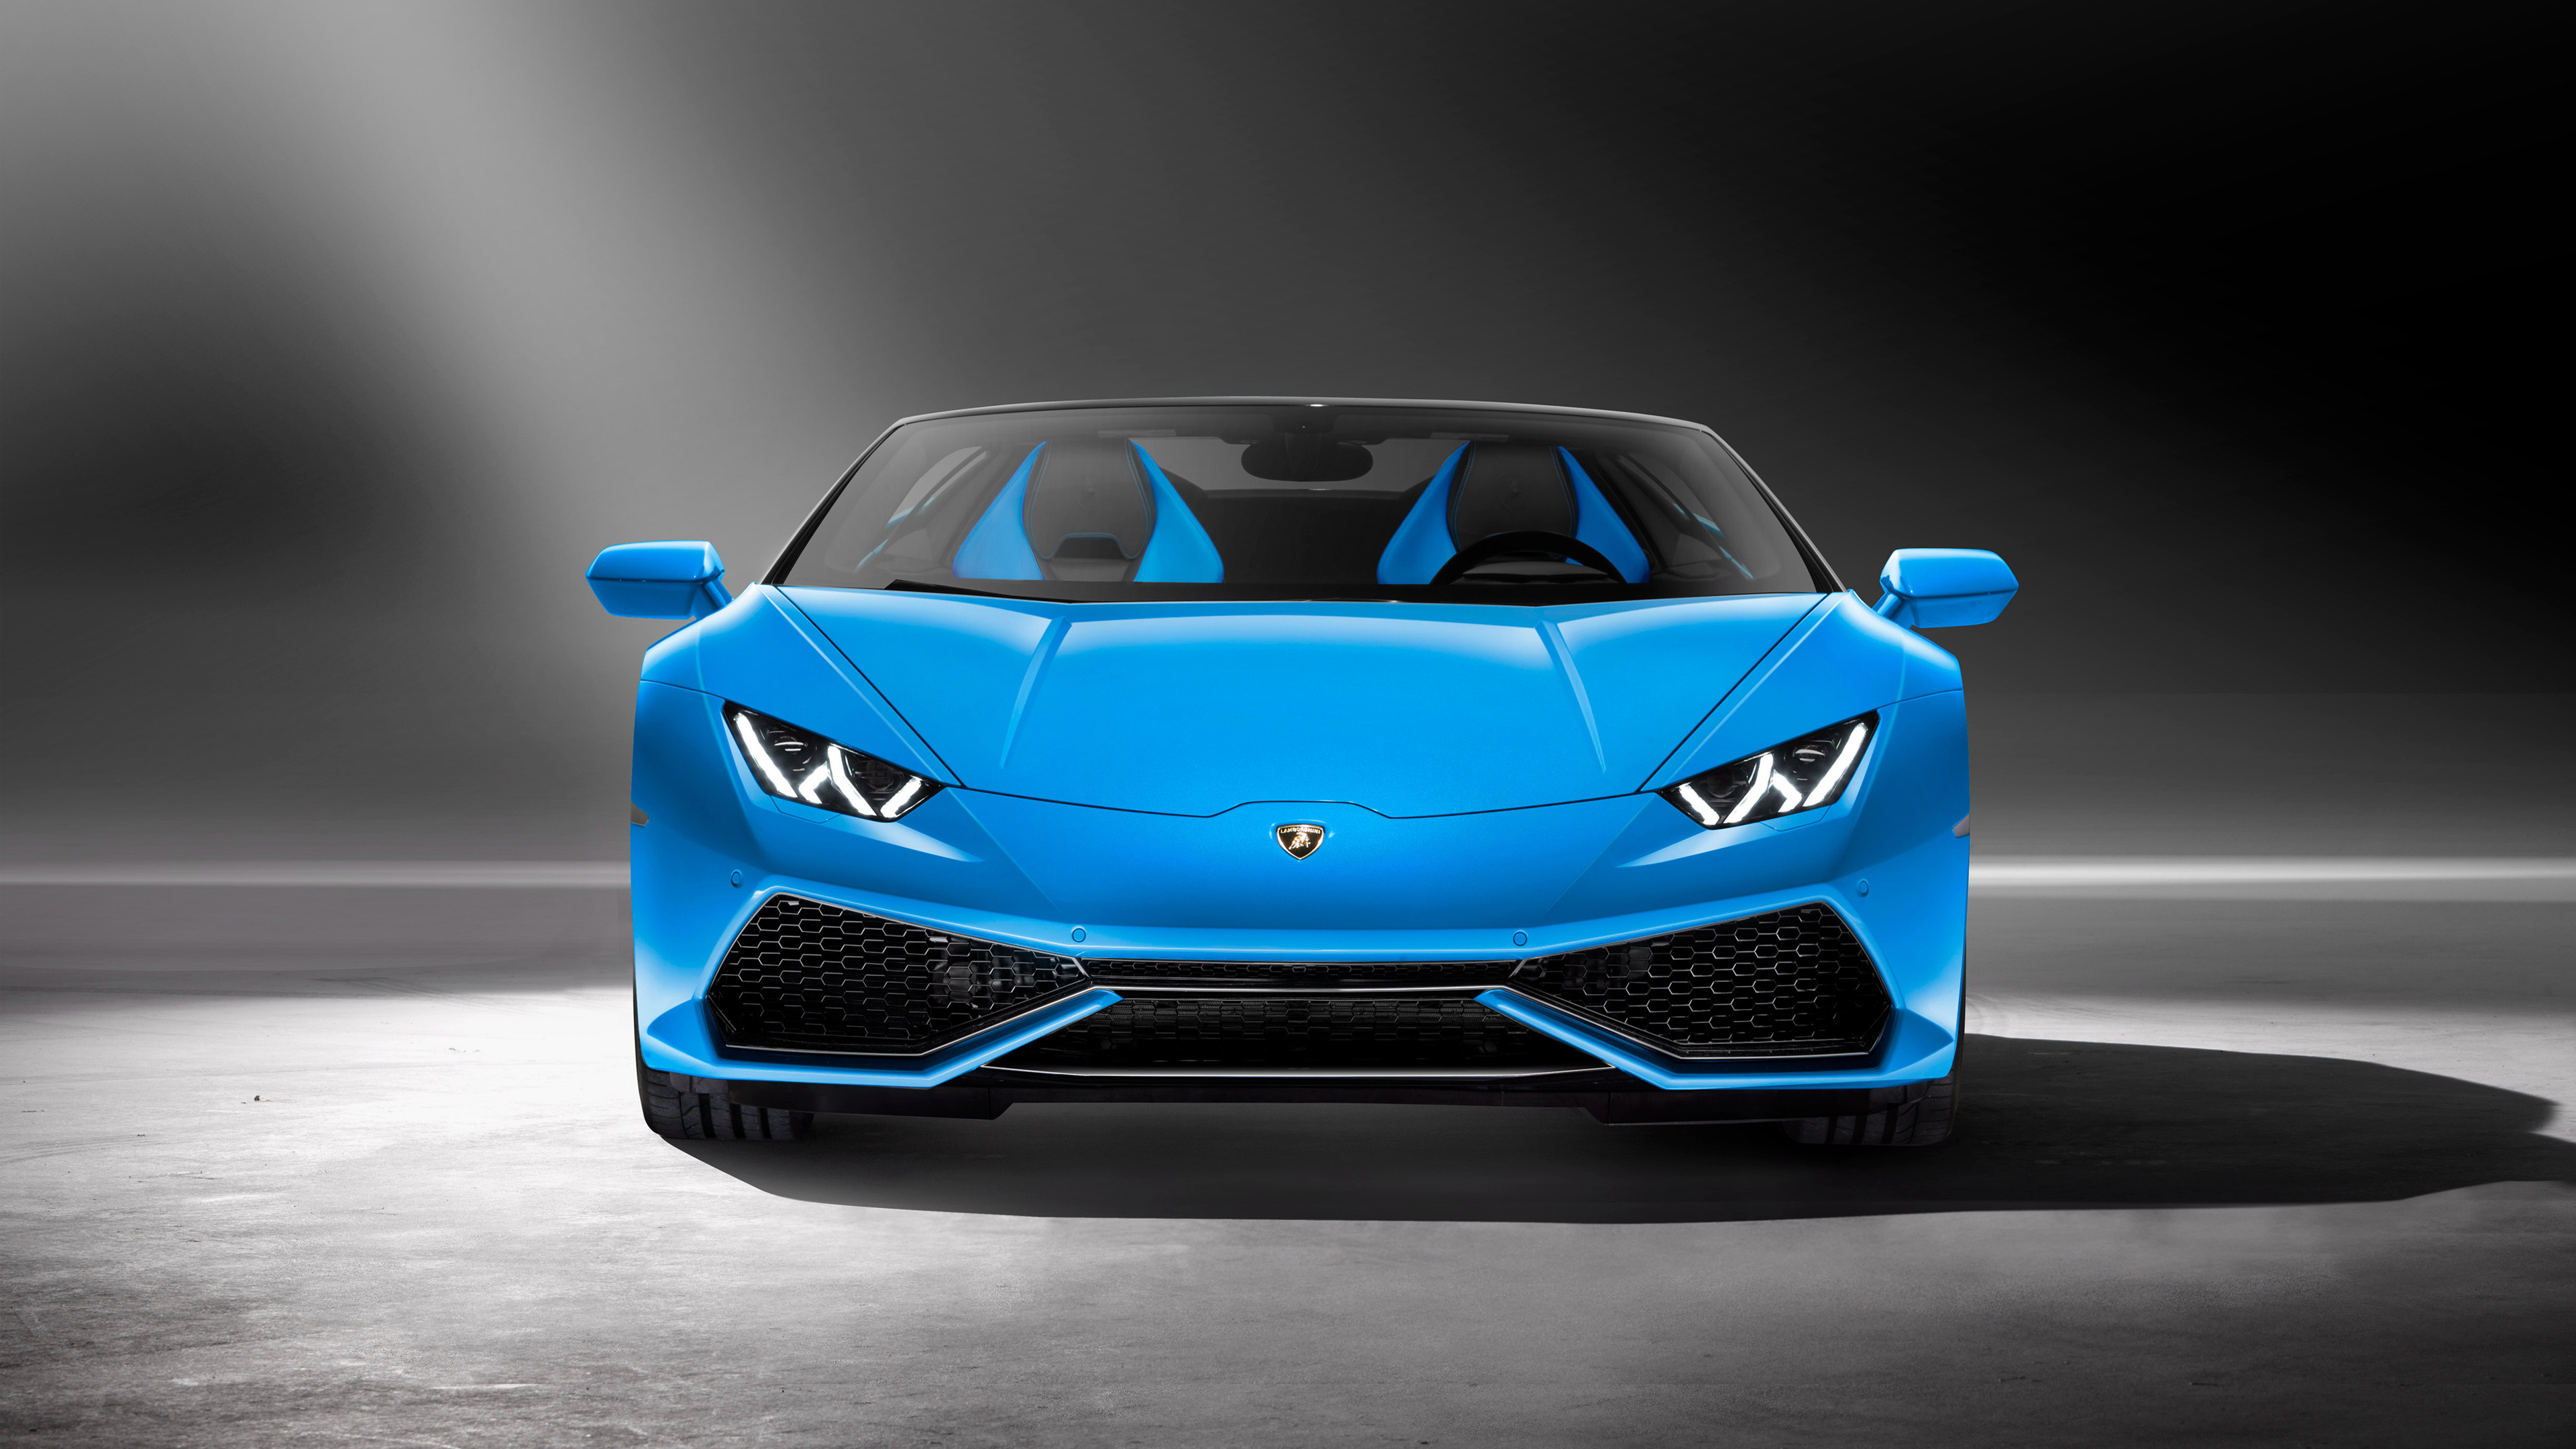 Lamborghini Huracan Hd Wallpaper 65 Images